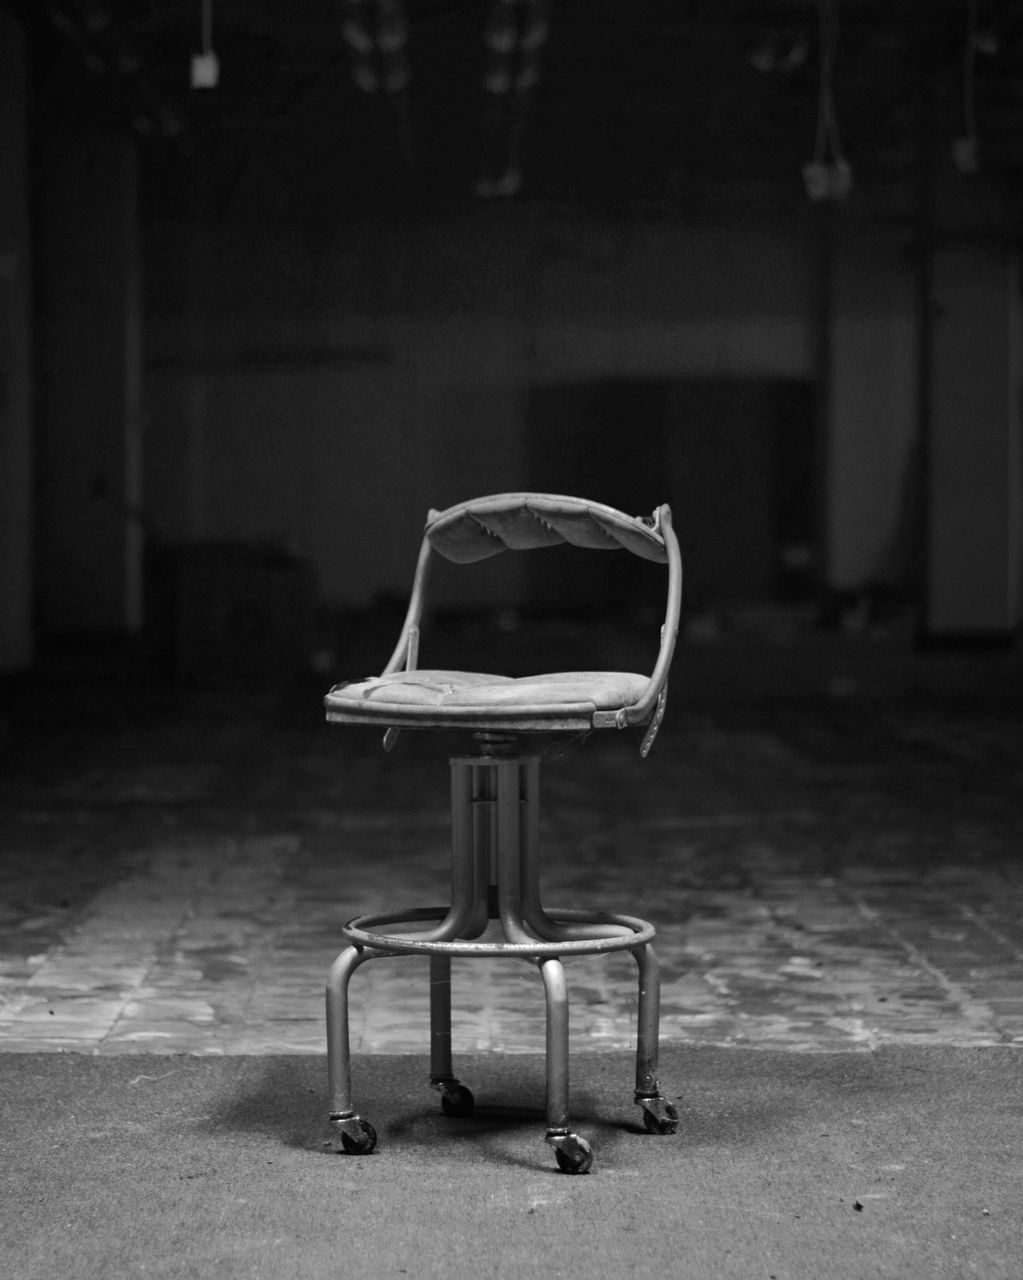 indoors, focus on foreground, chair, no people, day